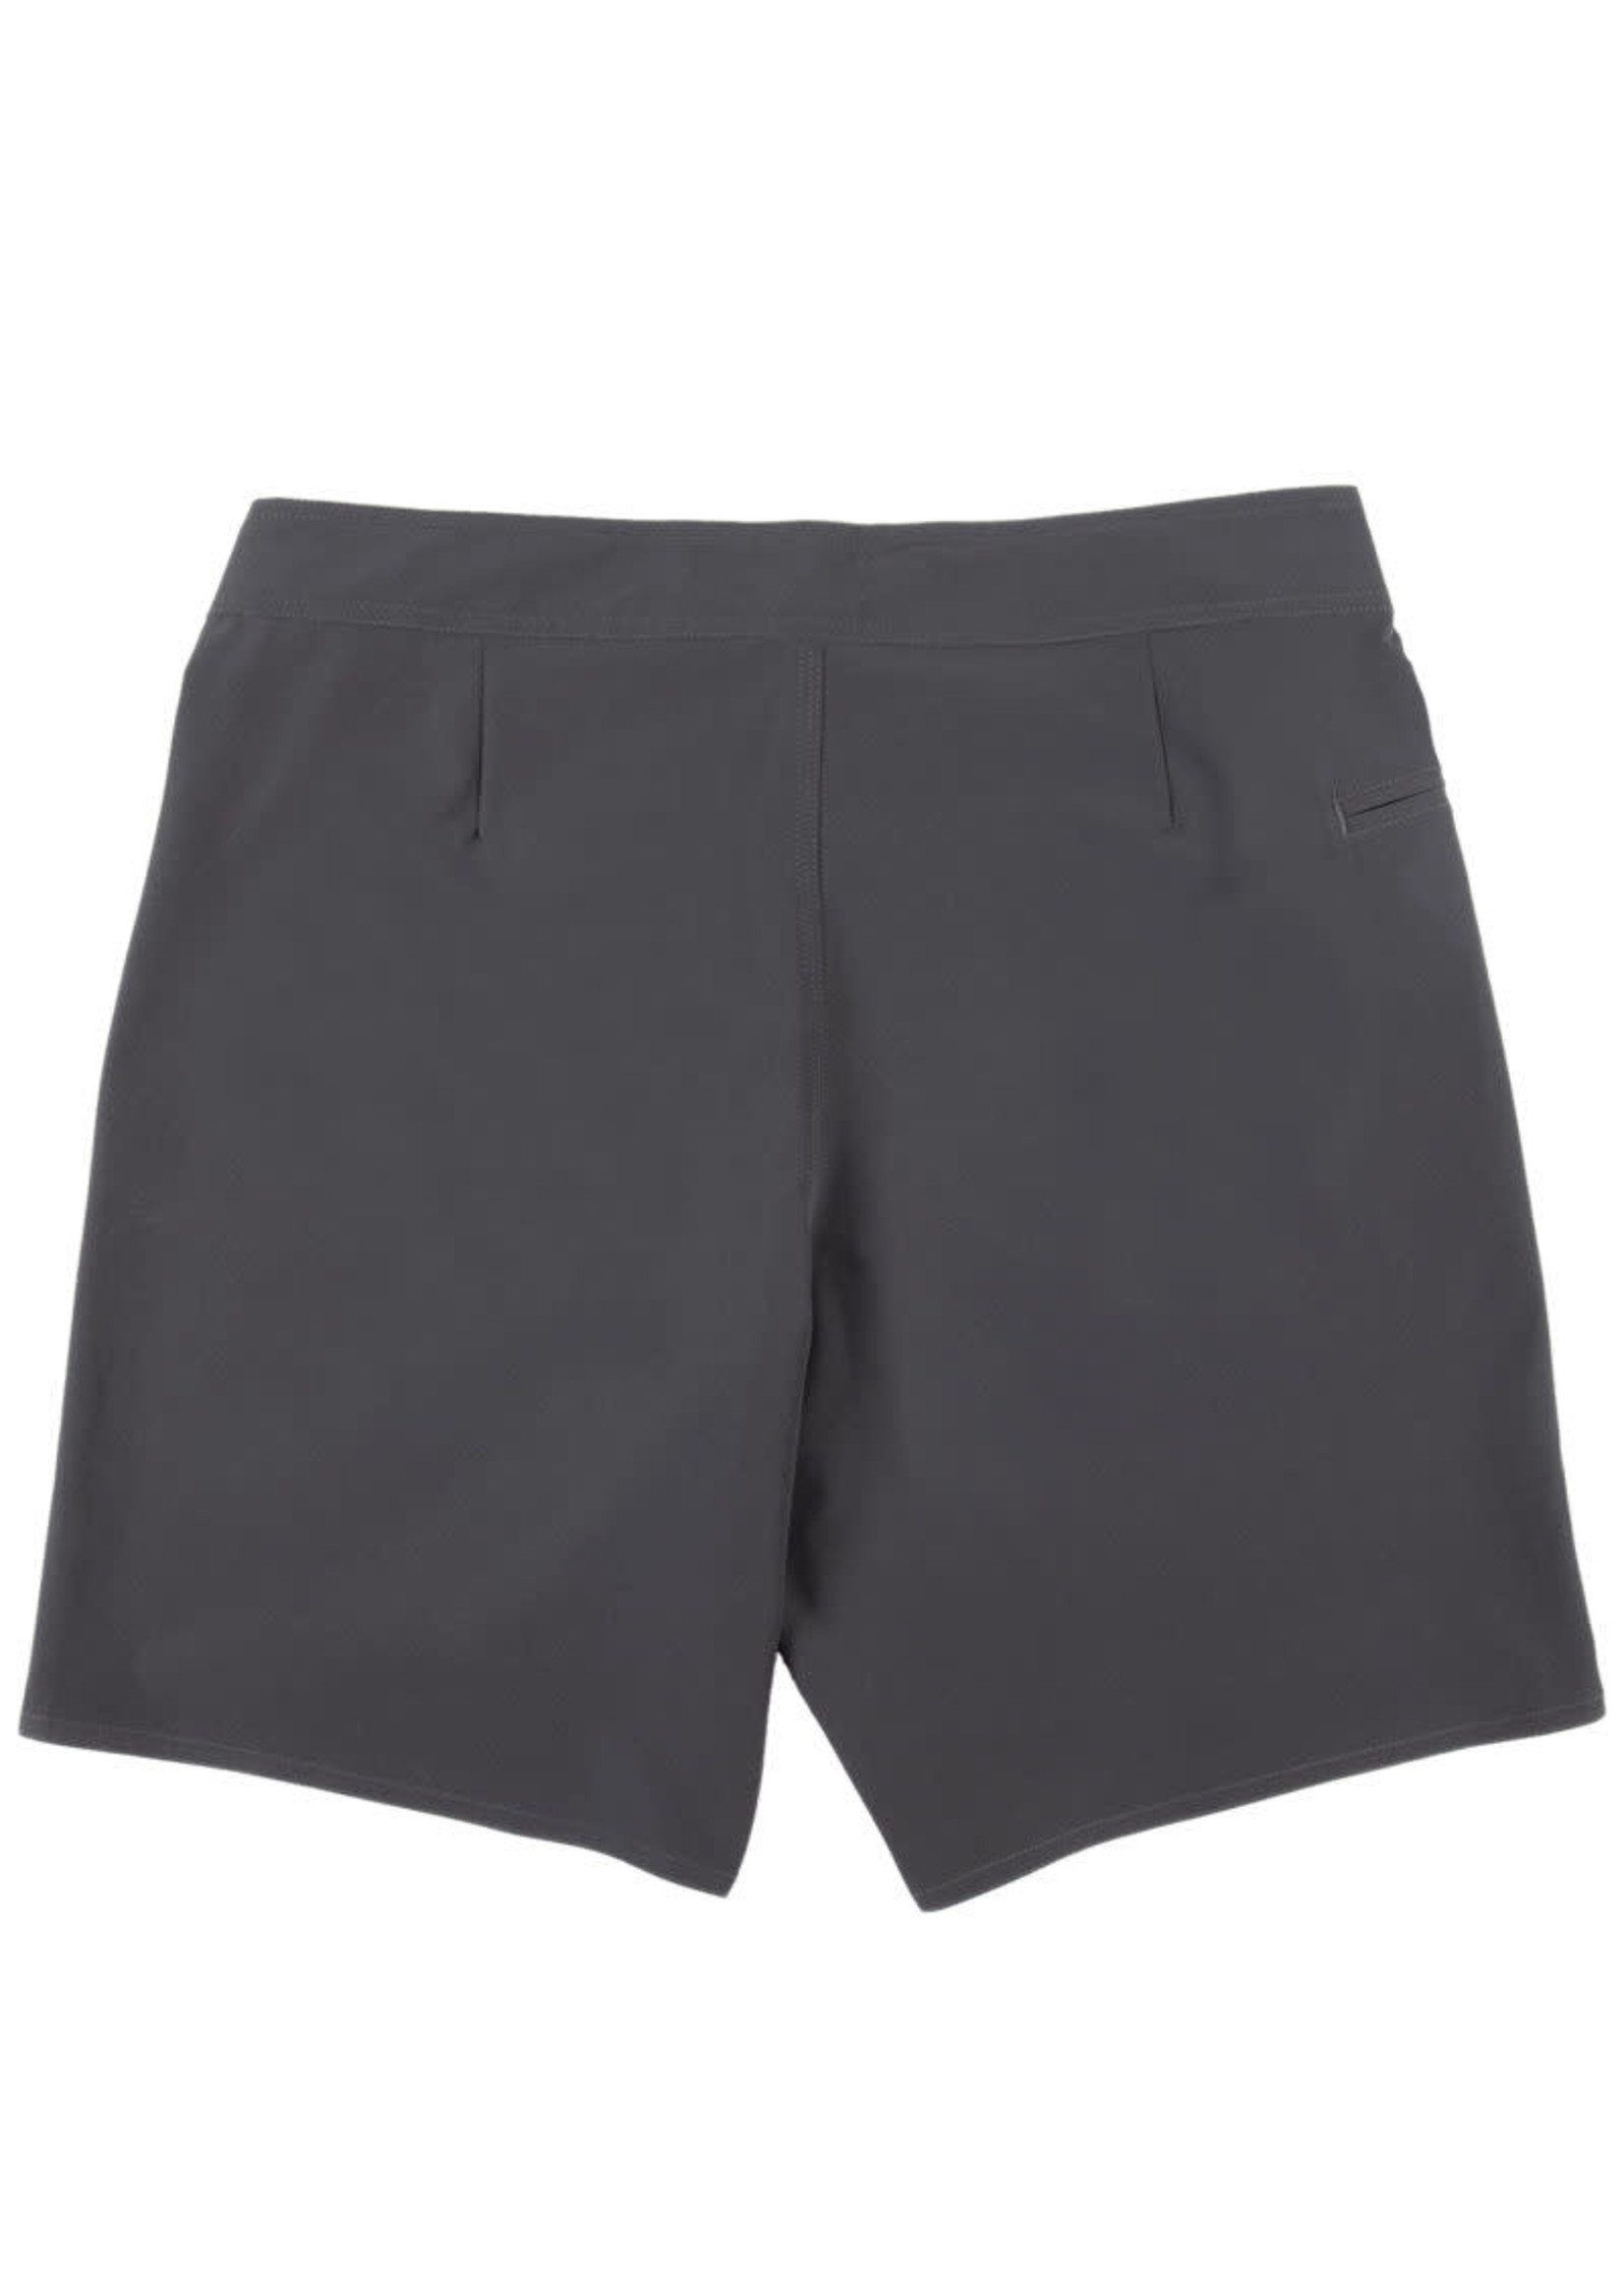 Lost Lost Session Boardshort